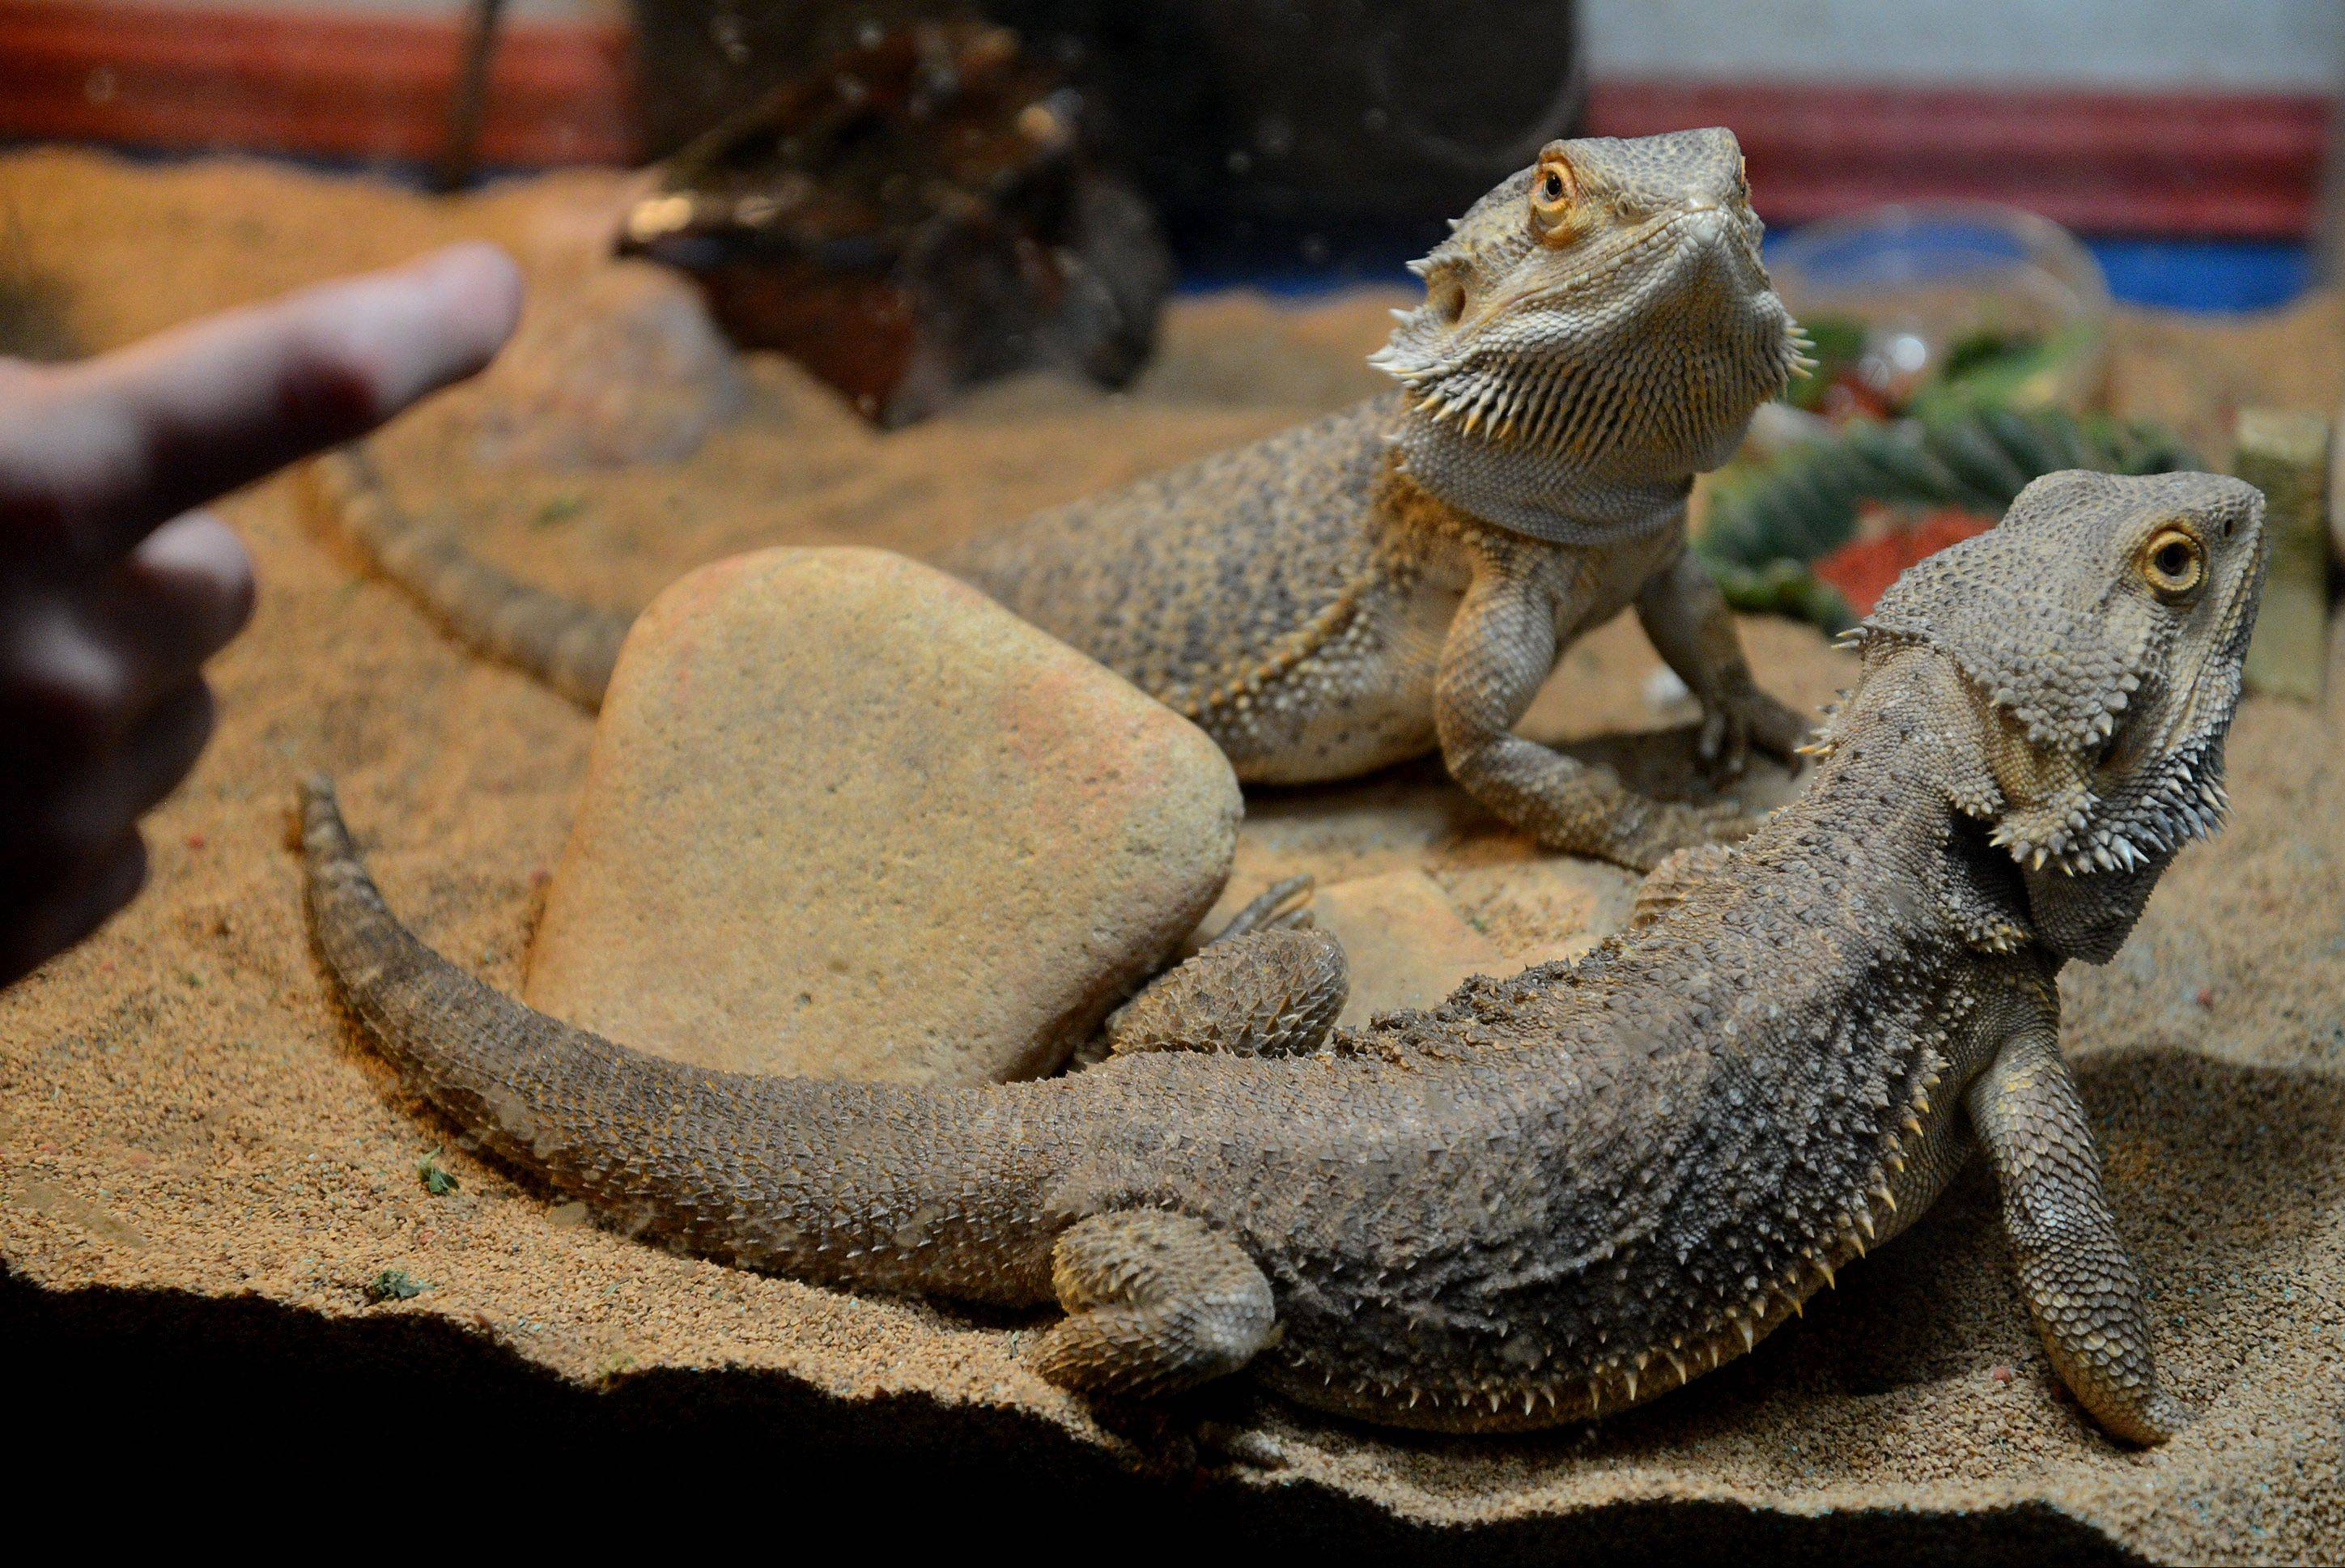 Henry Gabriel's 1 1/2-year-old bearded dragons Lenerd and Gabriel.